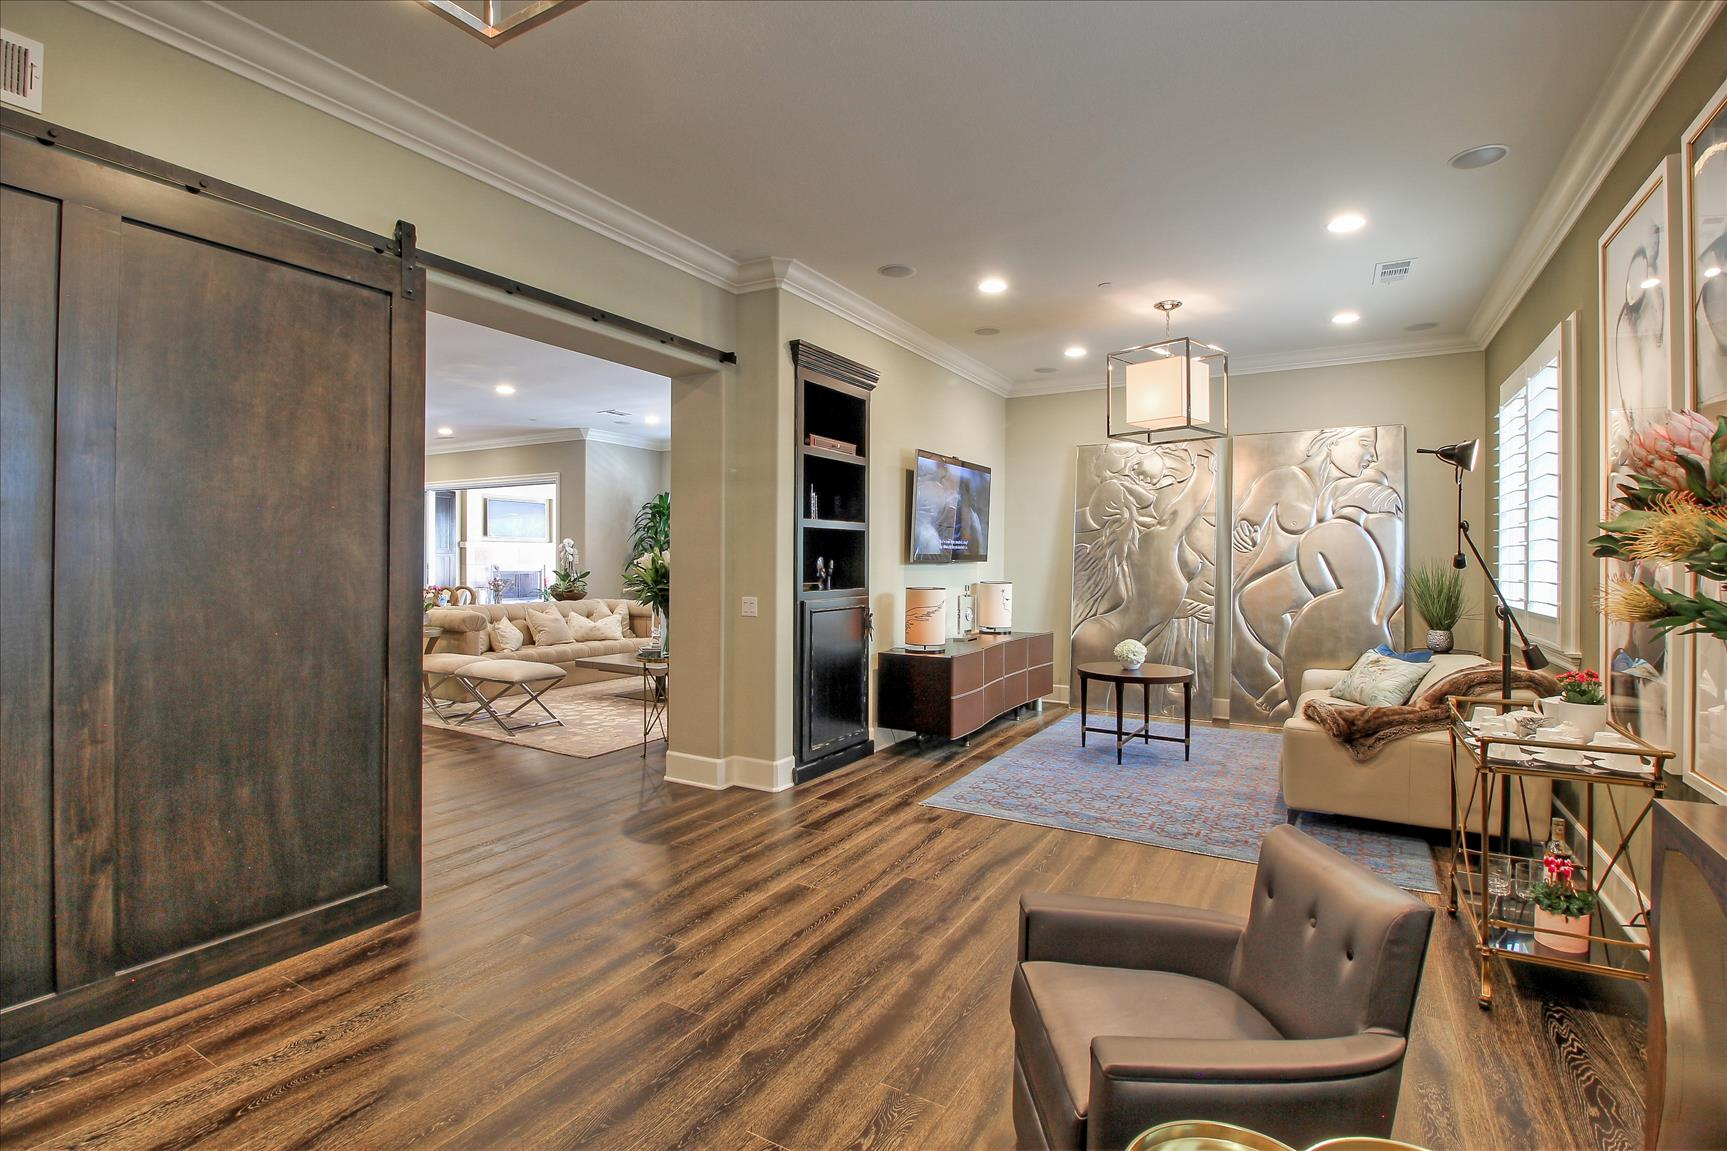 17471 Kennebunk Ln, Huntington Beach, CA  9264911.jpg